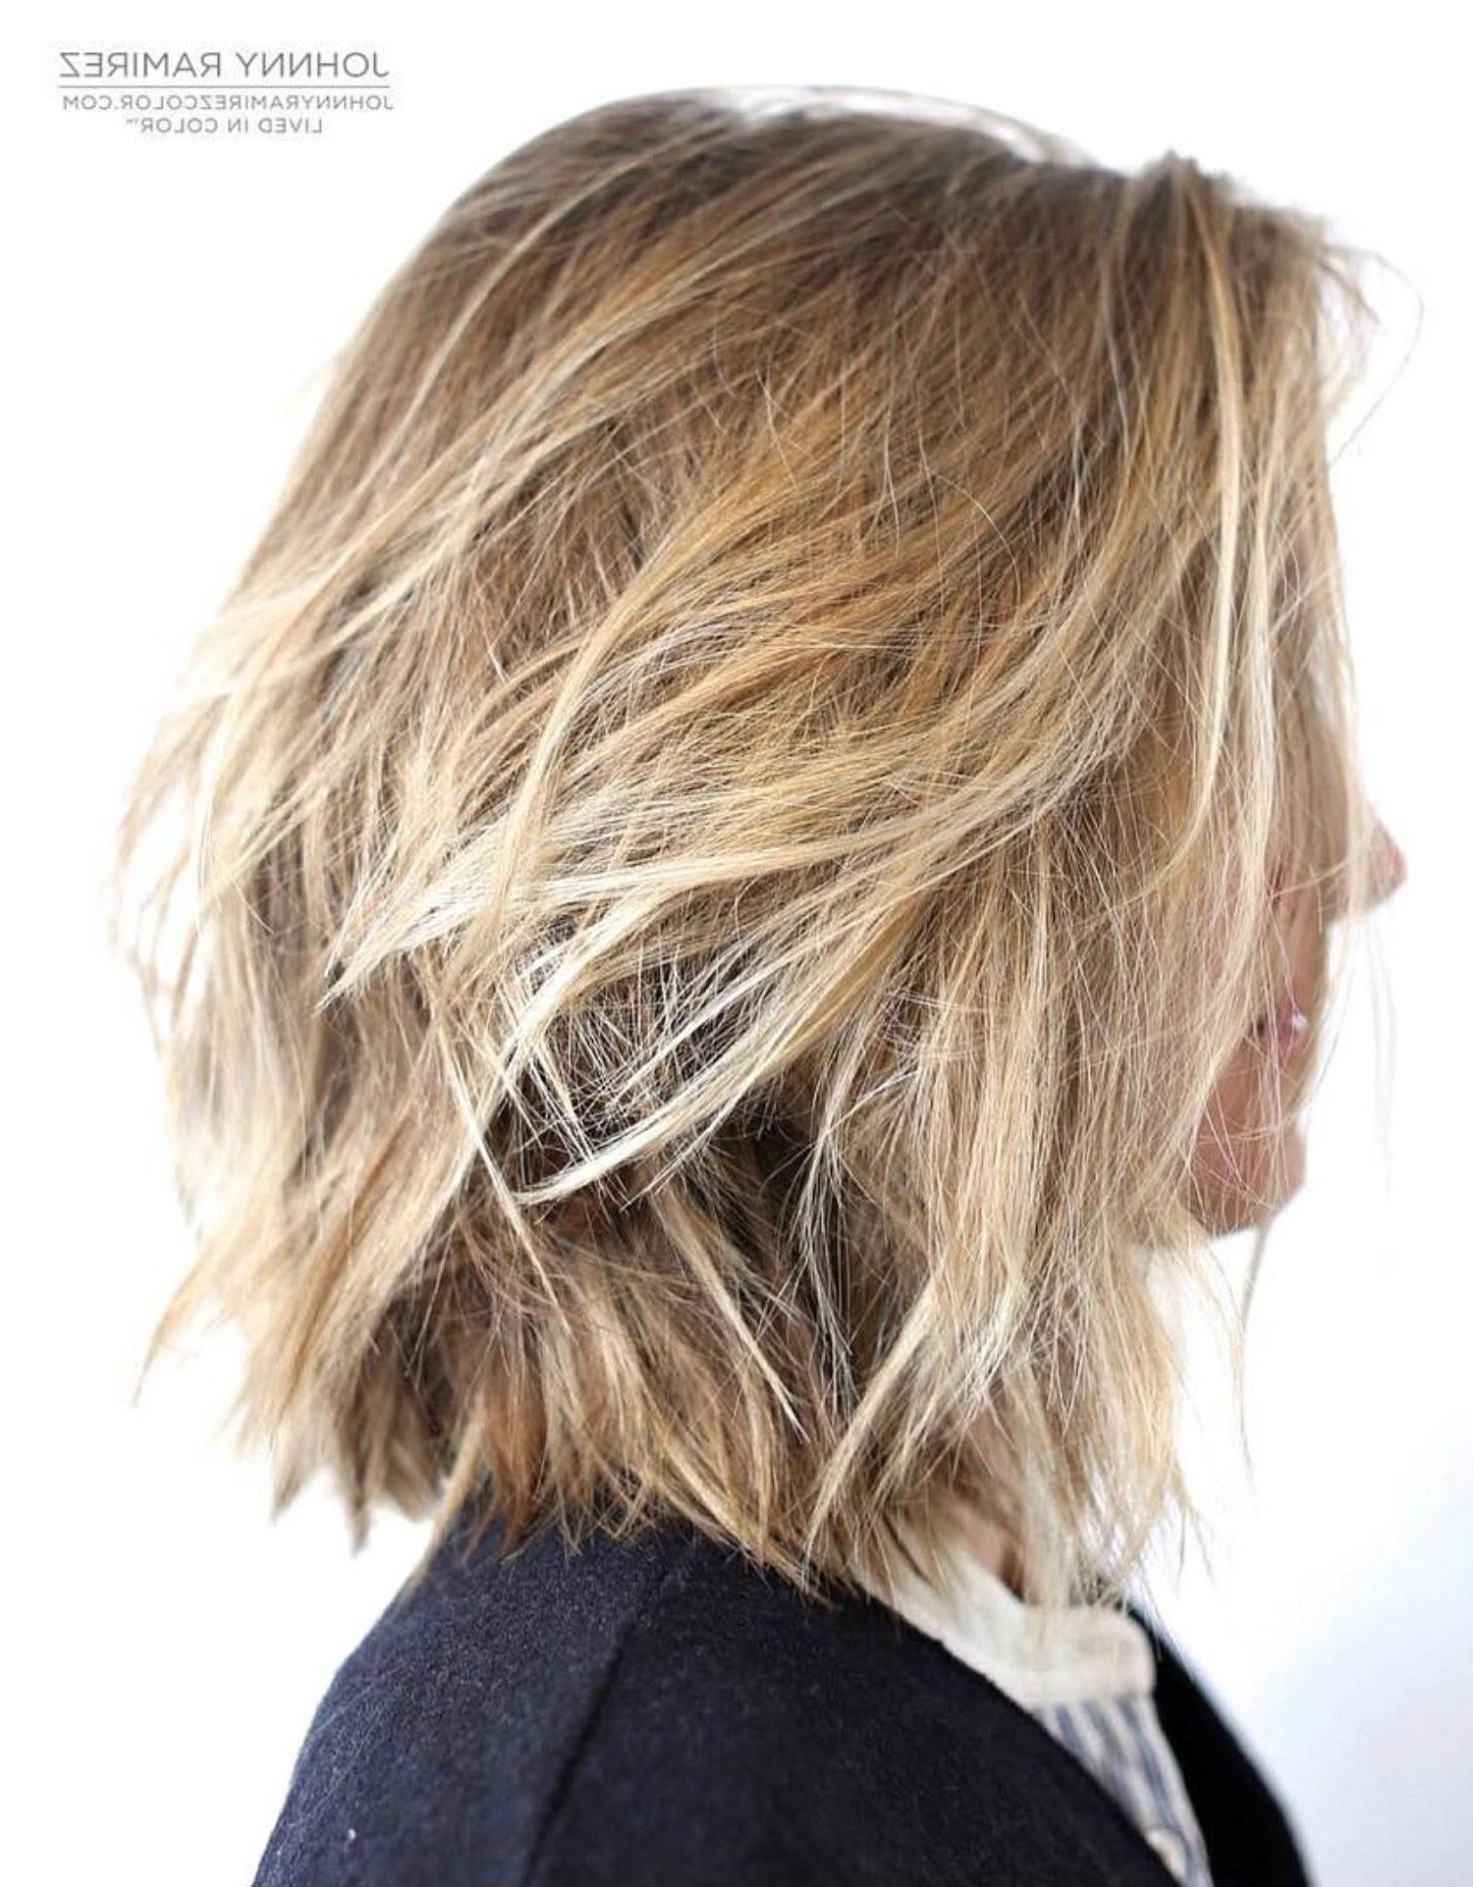 Hairstyles : Razored Blonde Bob Intriguing 70 Brightest For Widely Used Two Layer Razored Blonde Hairstyles (View 14 of 20)